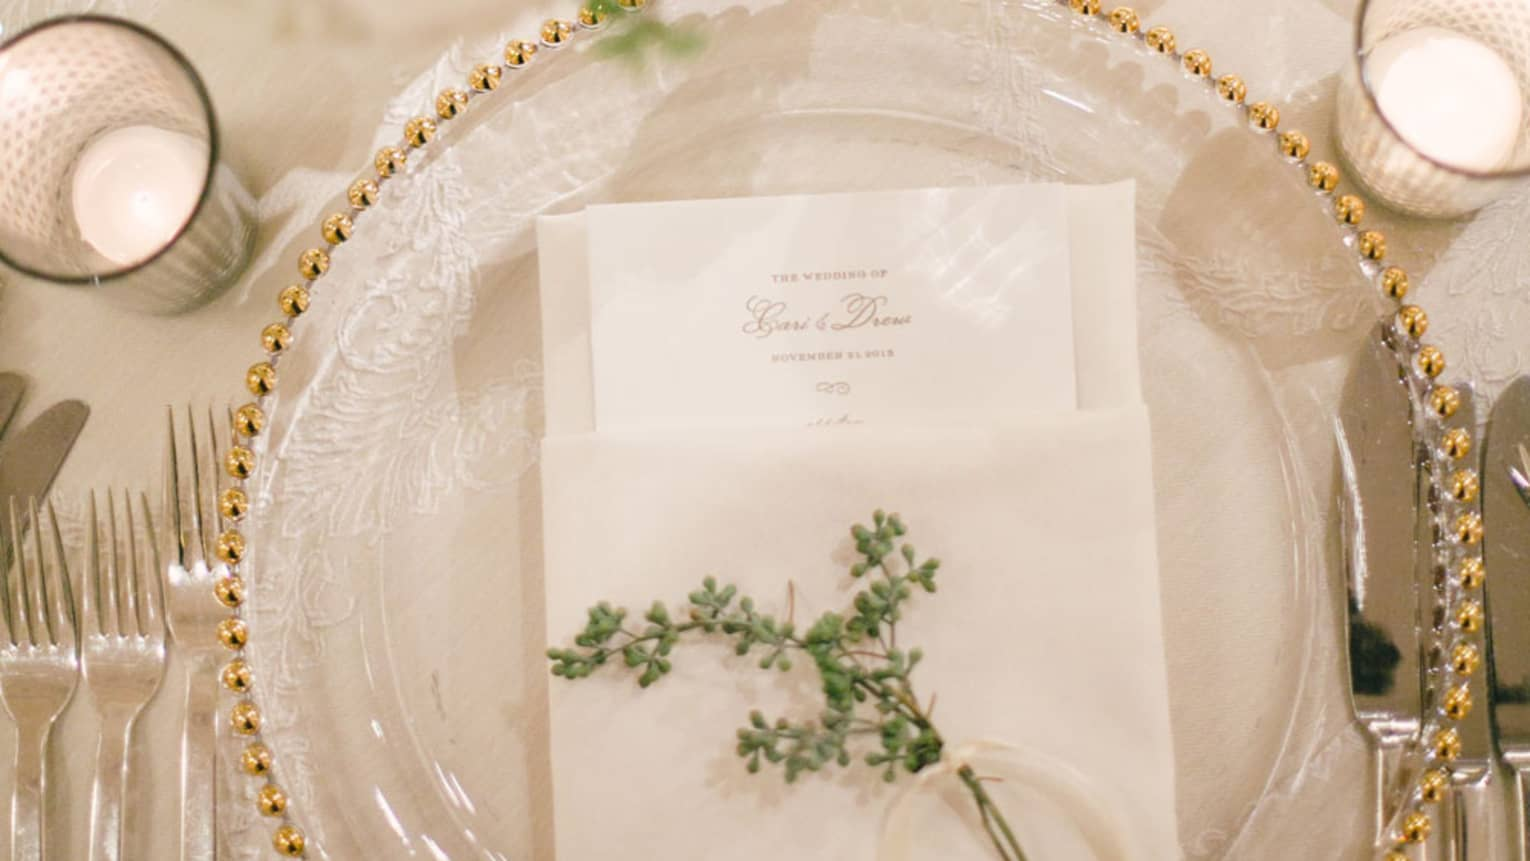 Wedding table setting with menu and flower on plate